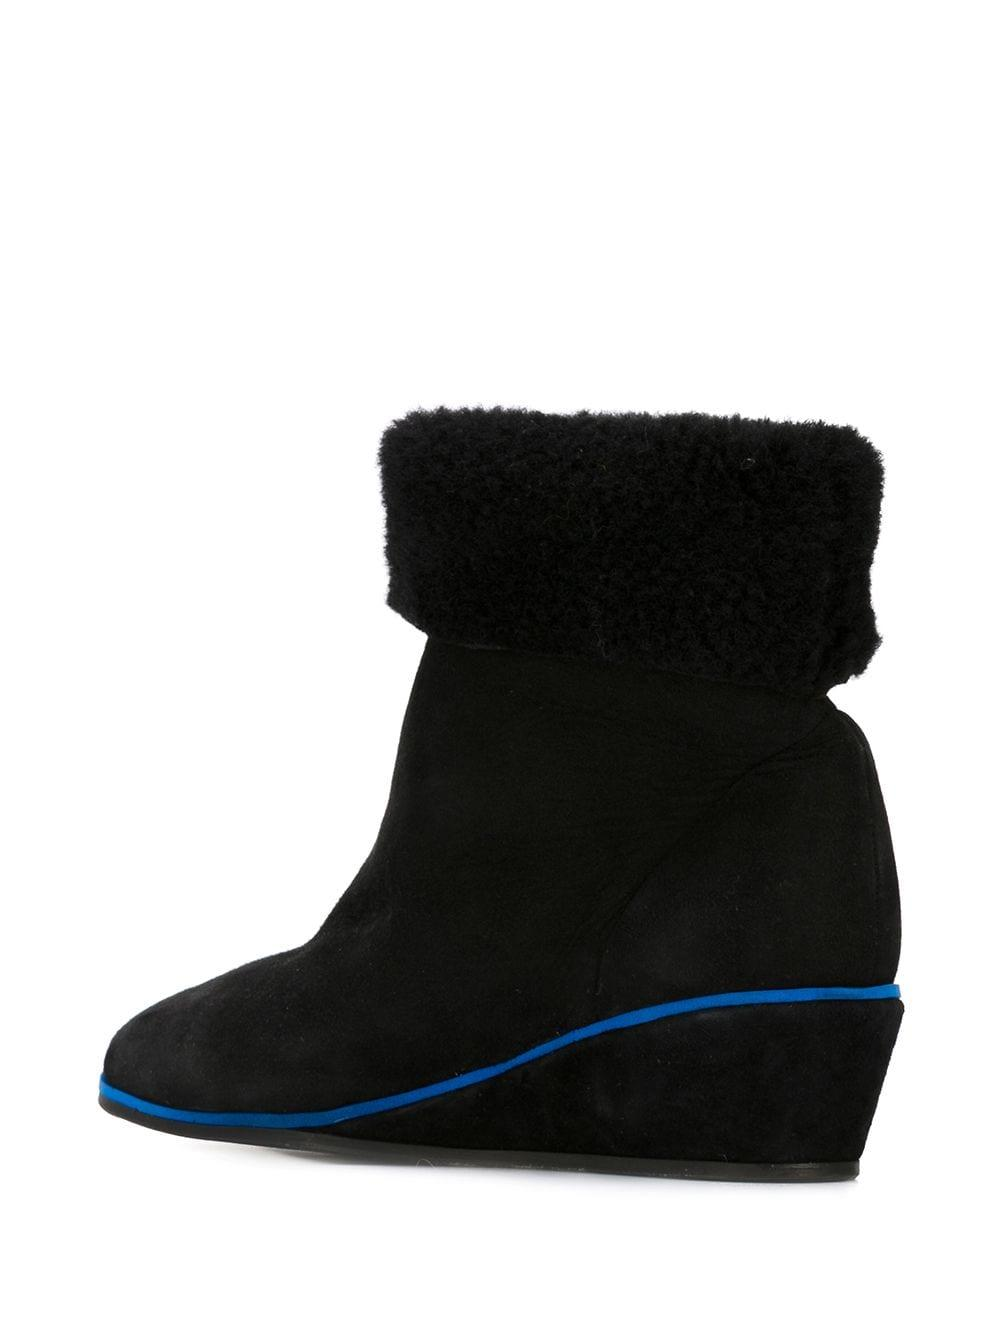 Minimarket Milkyway Suede and Leather Boots in Black